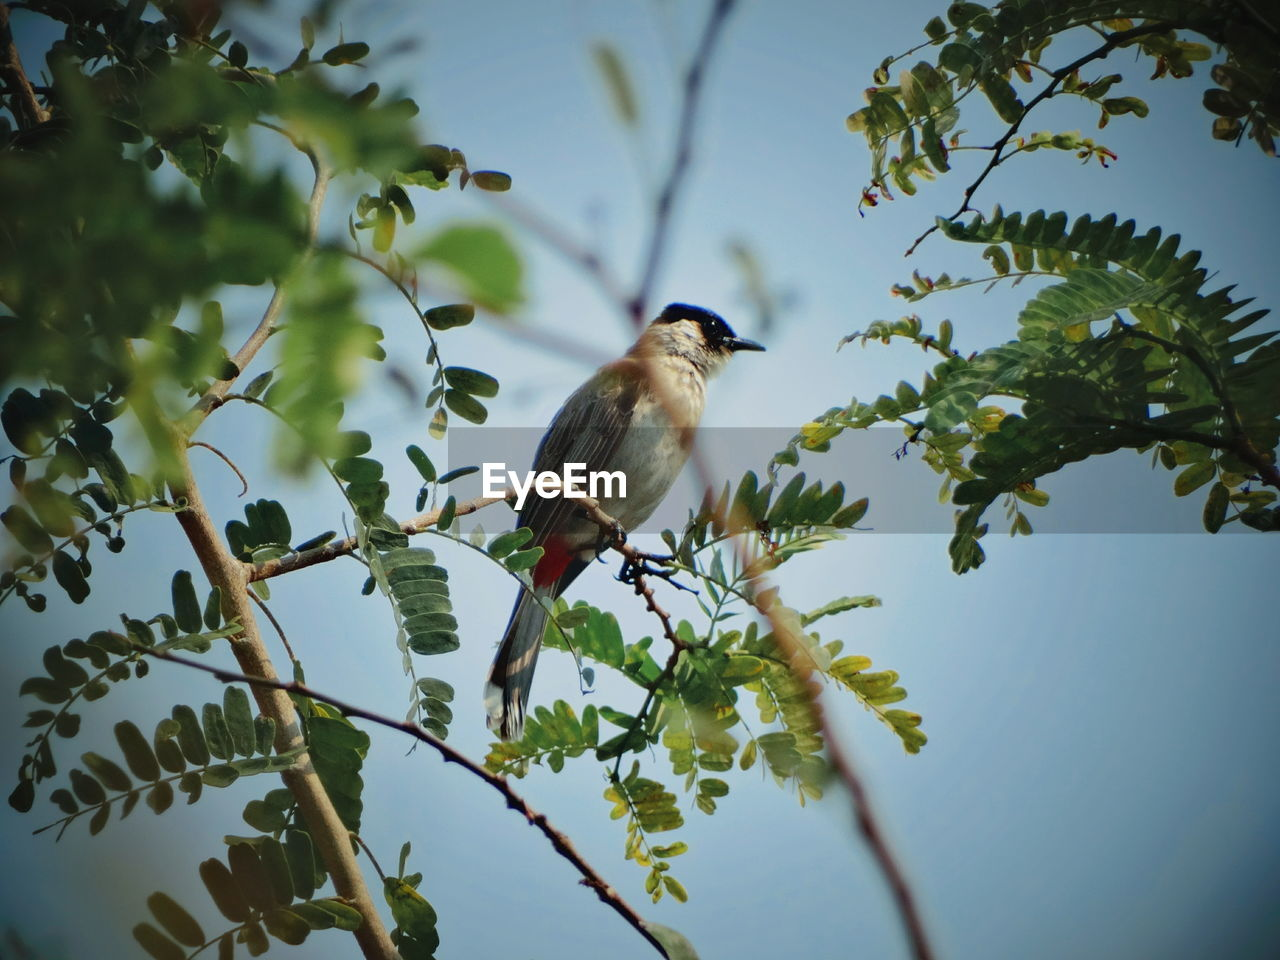 tree, vertebrate, animal themes, plant, animal wildlife, animal, animals in the wild, bird, perching, one animal, branch, low angle view, leaf, nature, plant part, no people, growth, day, sky, outdoors